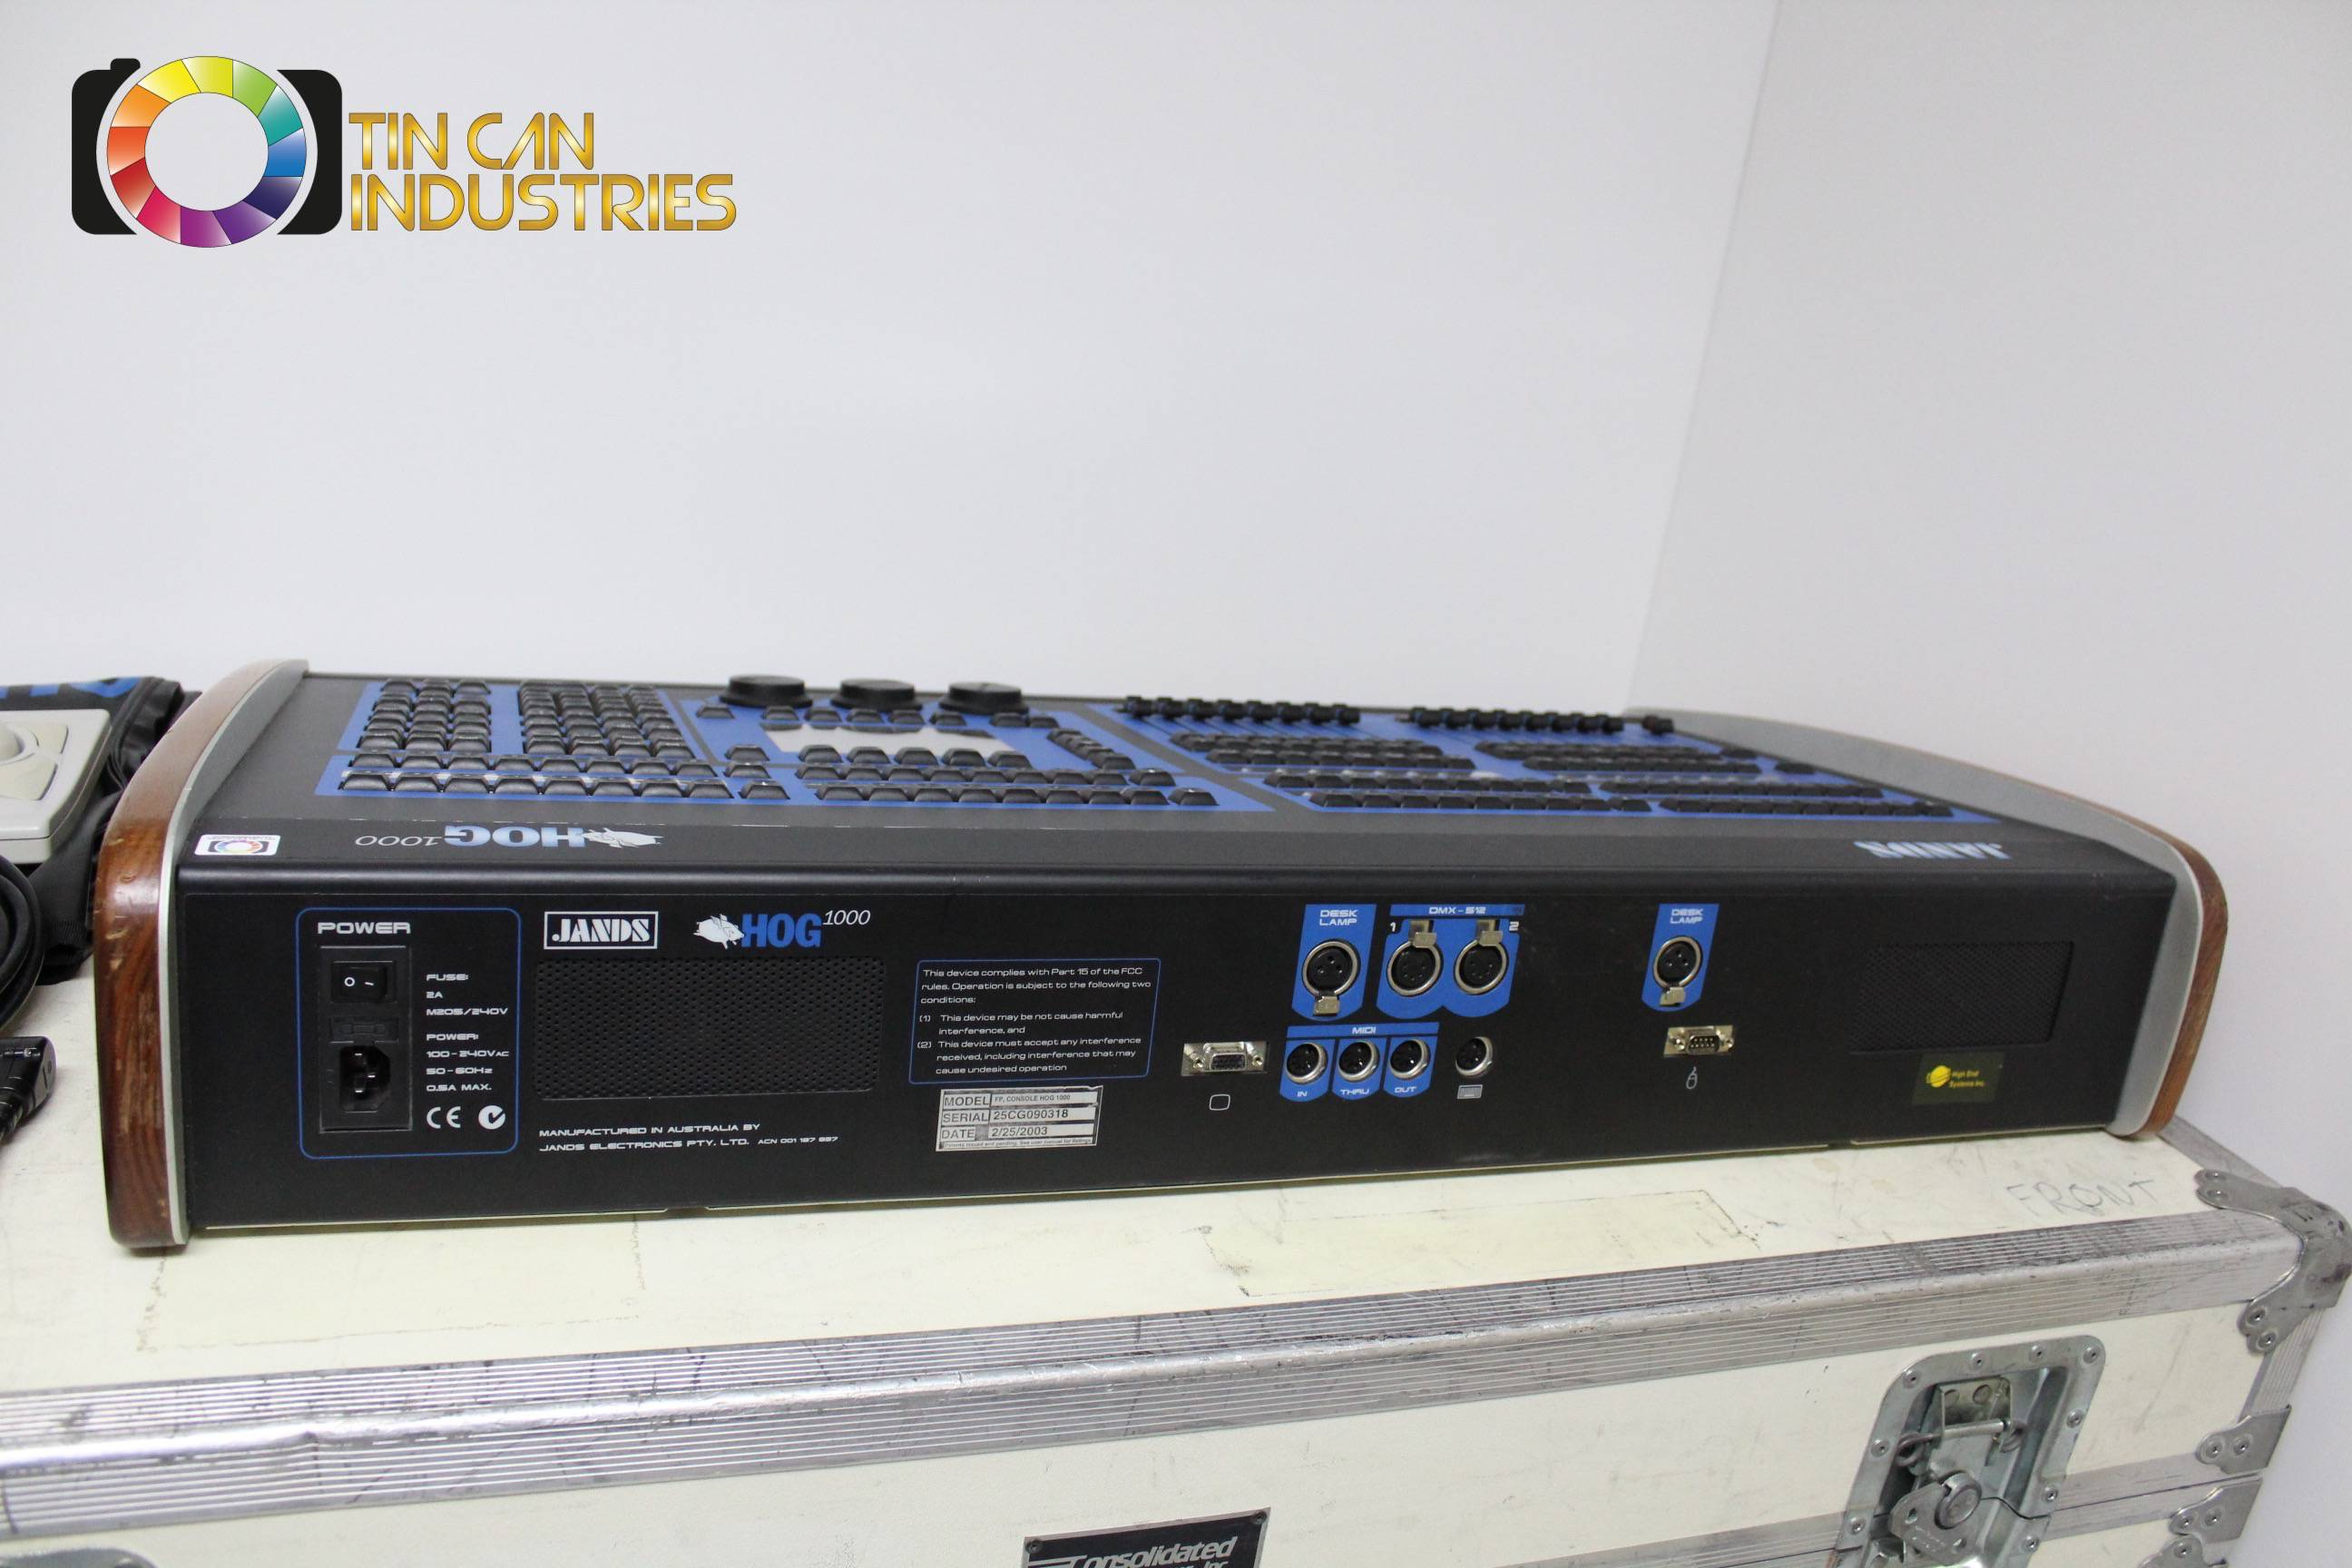 ... High End Systems Jands Hog 1000 Stage Lighting Console w/Road Case FREE SHIPPING ... & High End Systems Jands Hog 1000 Stage Lighting Console w/Road Case ... azcodes.com